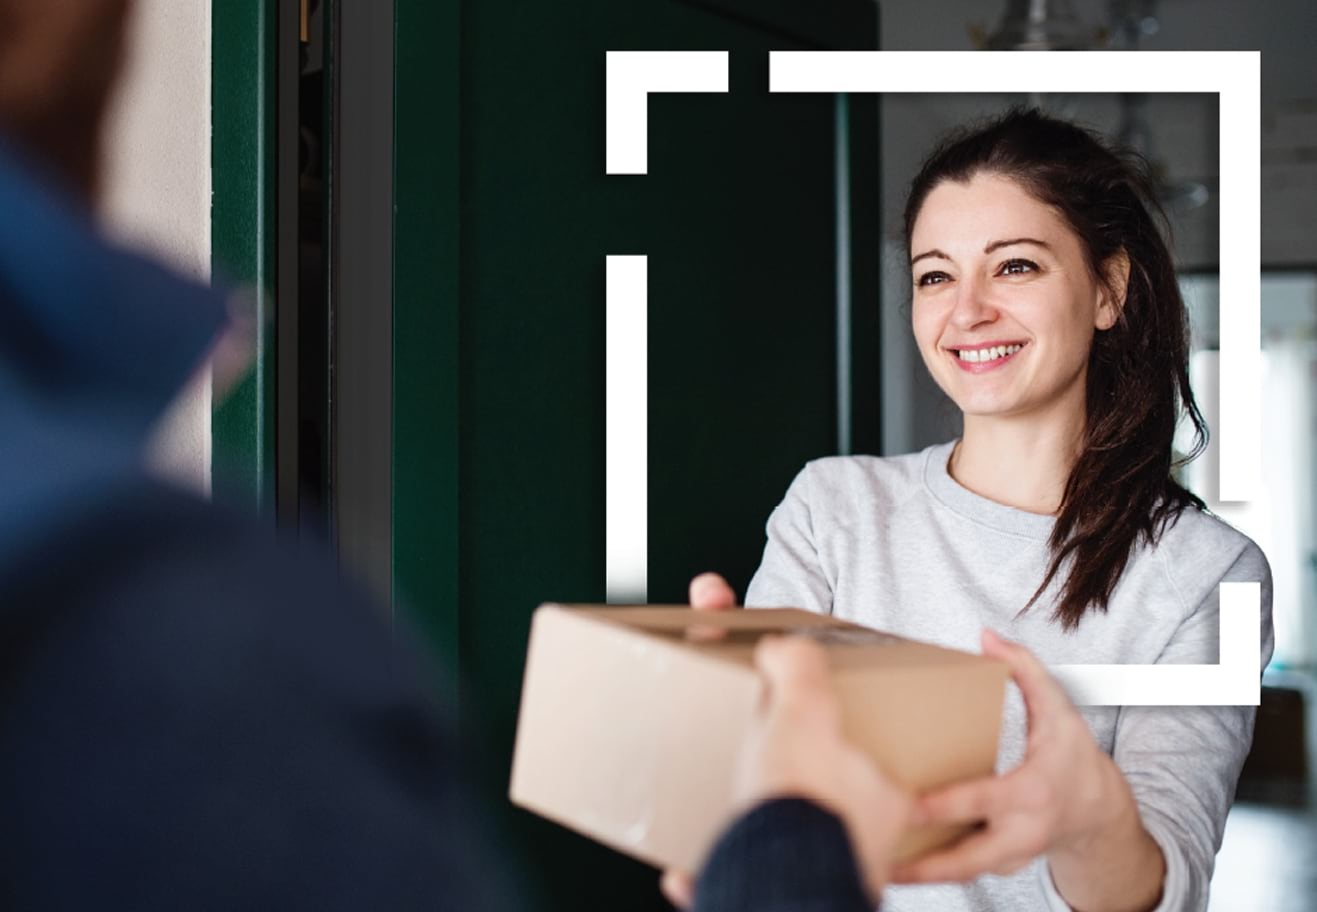 Consumer receiving a package based on behavioral purchases